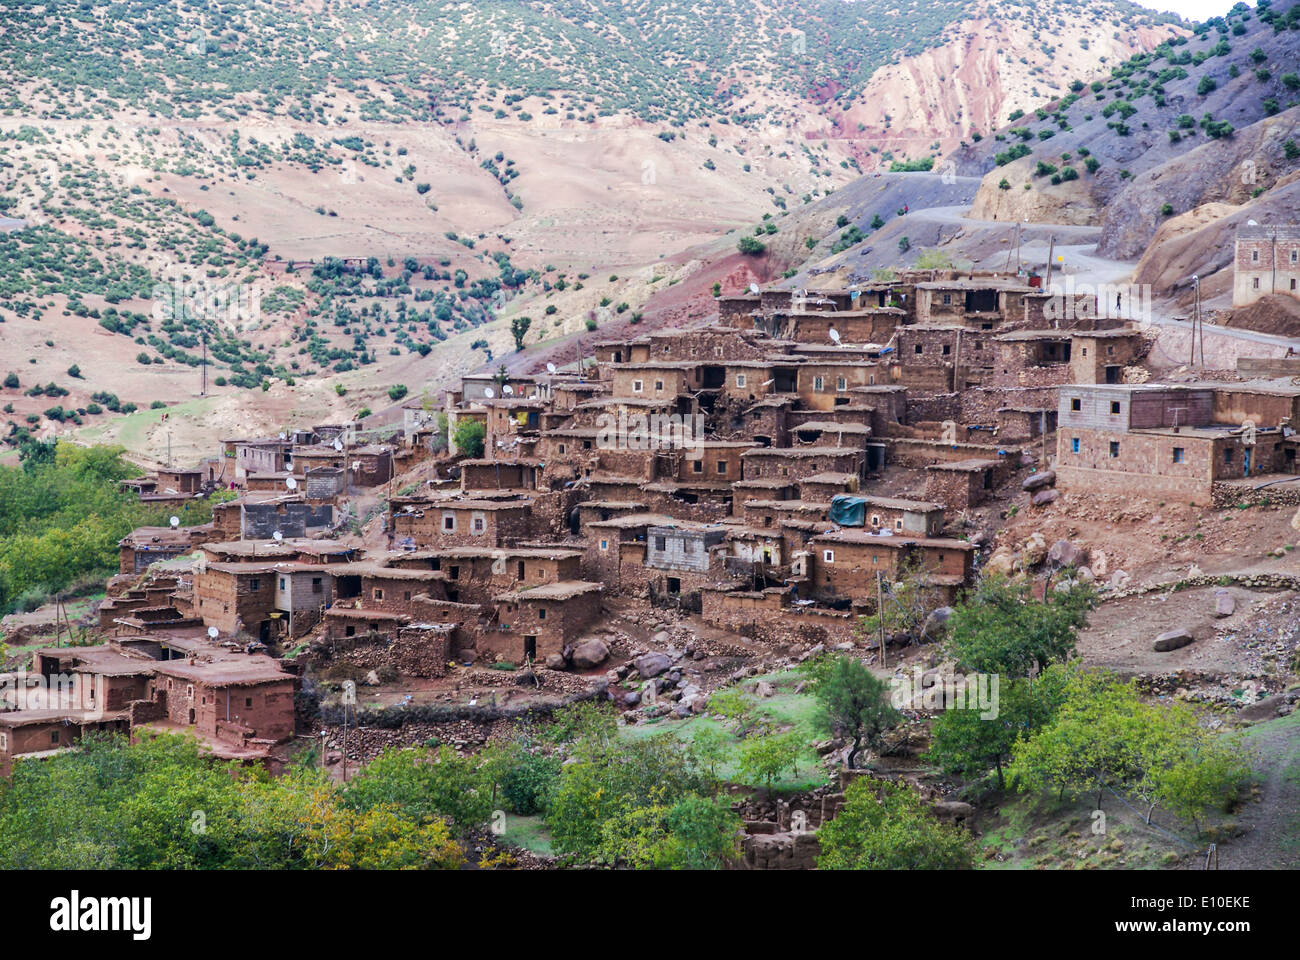 Berber village in the Ourika Valley in the High Atlas Mountains between Oukaimeden and Marrakech, Morocco - Stock Image